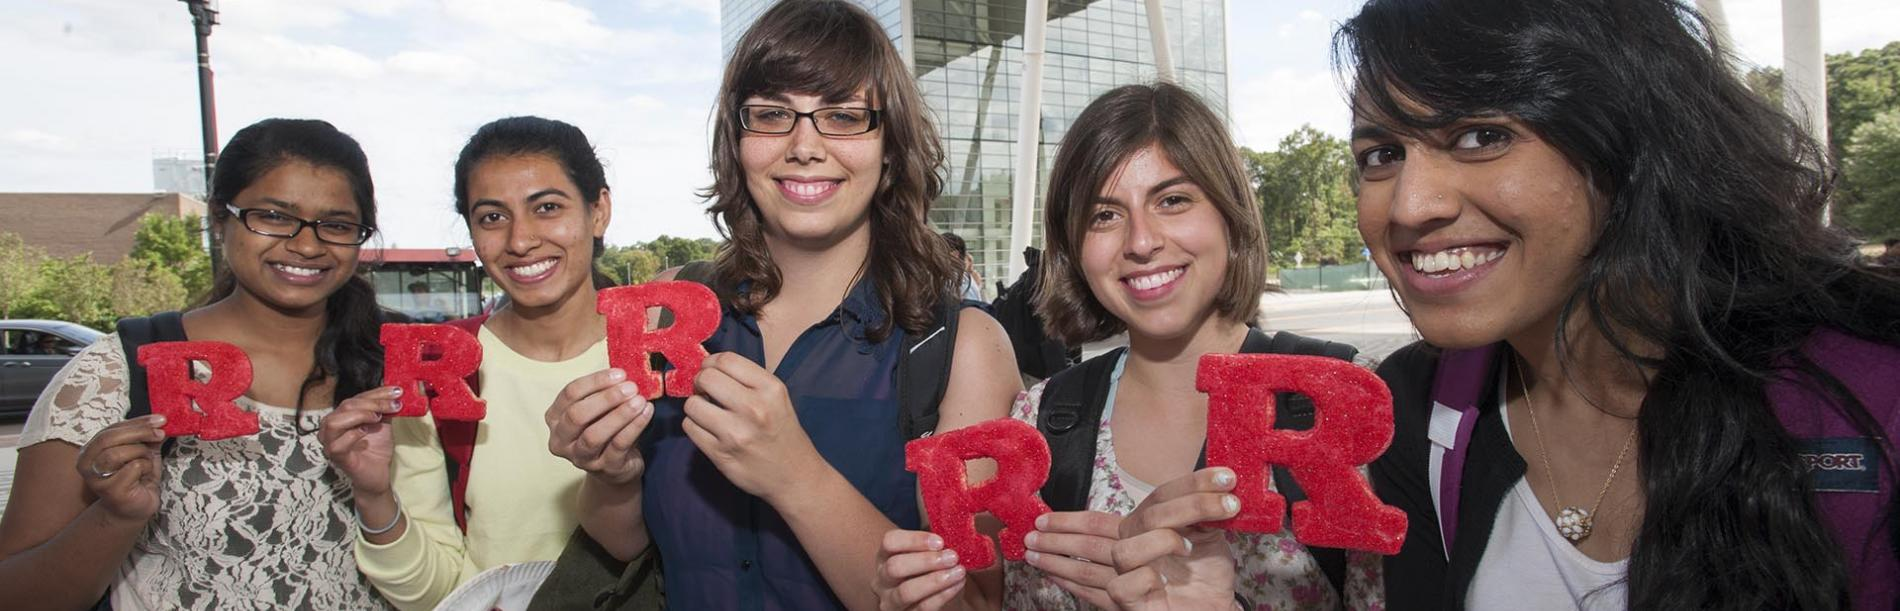 Students holding red Rs